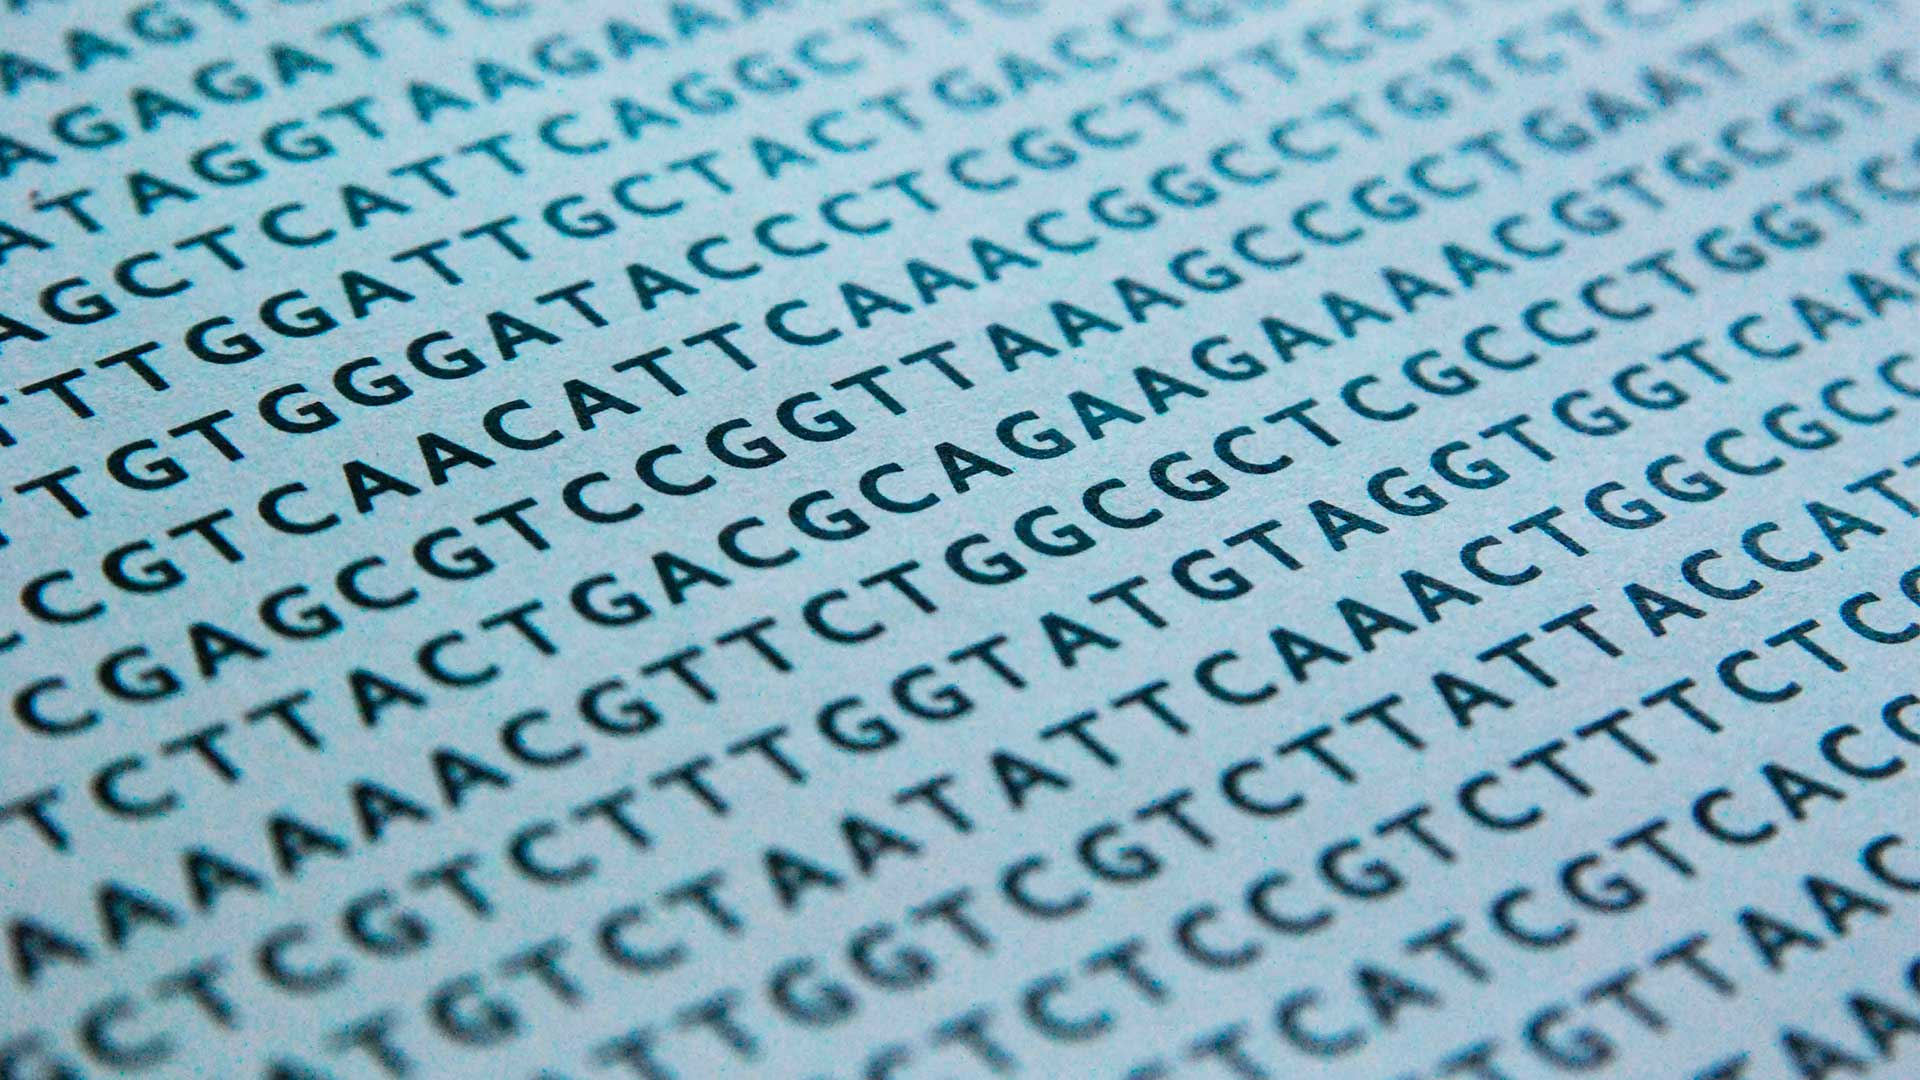 DNA sequence alignments